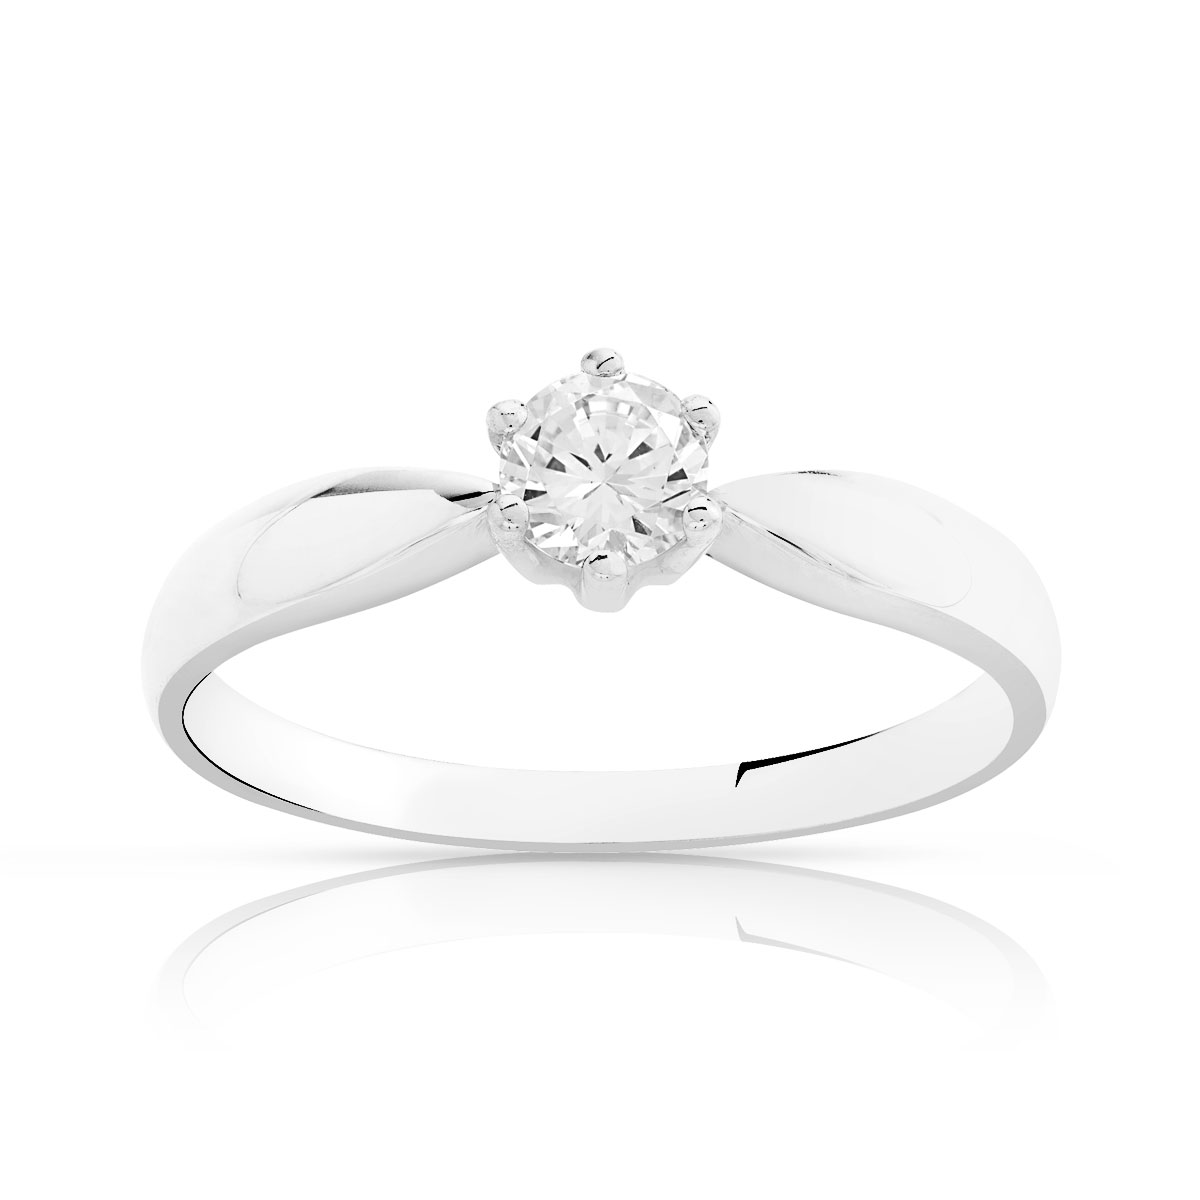 Bague Solitaire or 750 blanc diamant 0.30 ct - vue 1